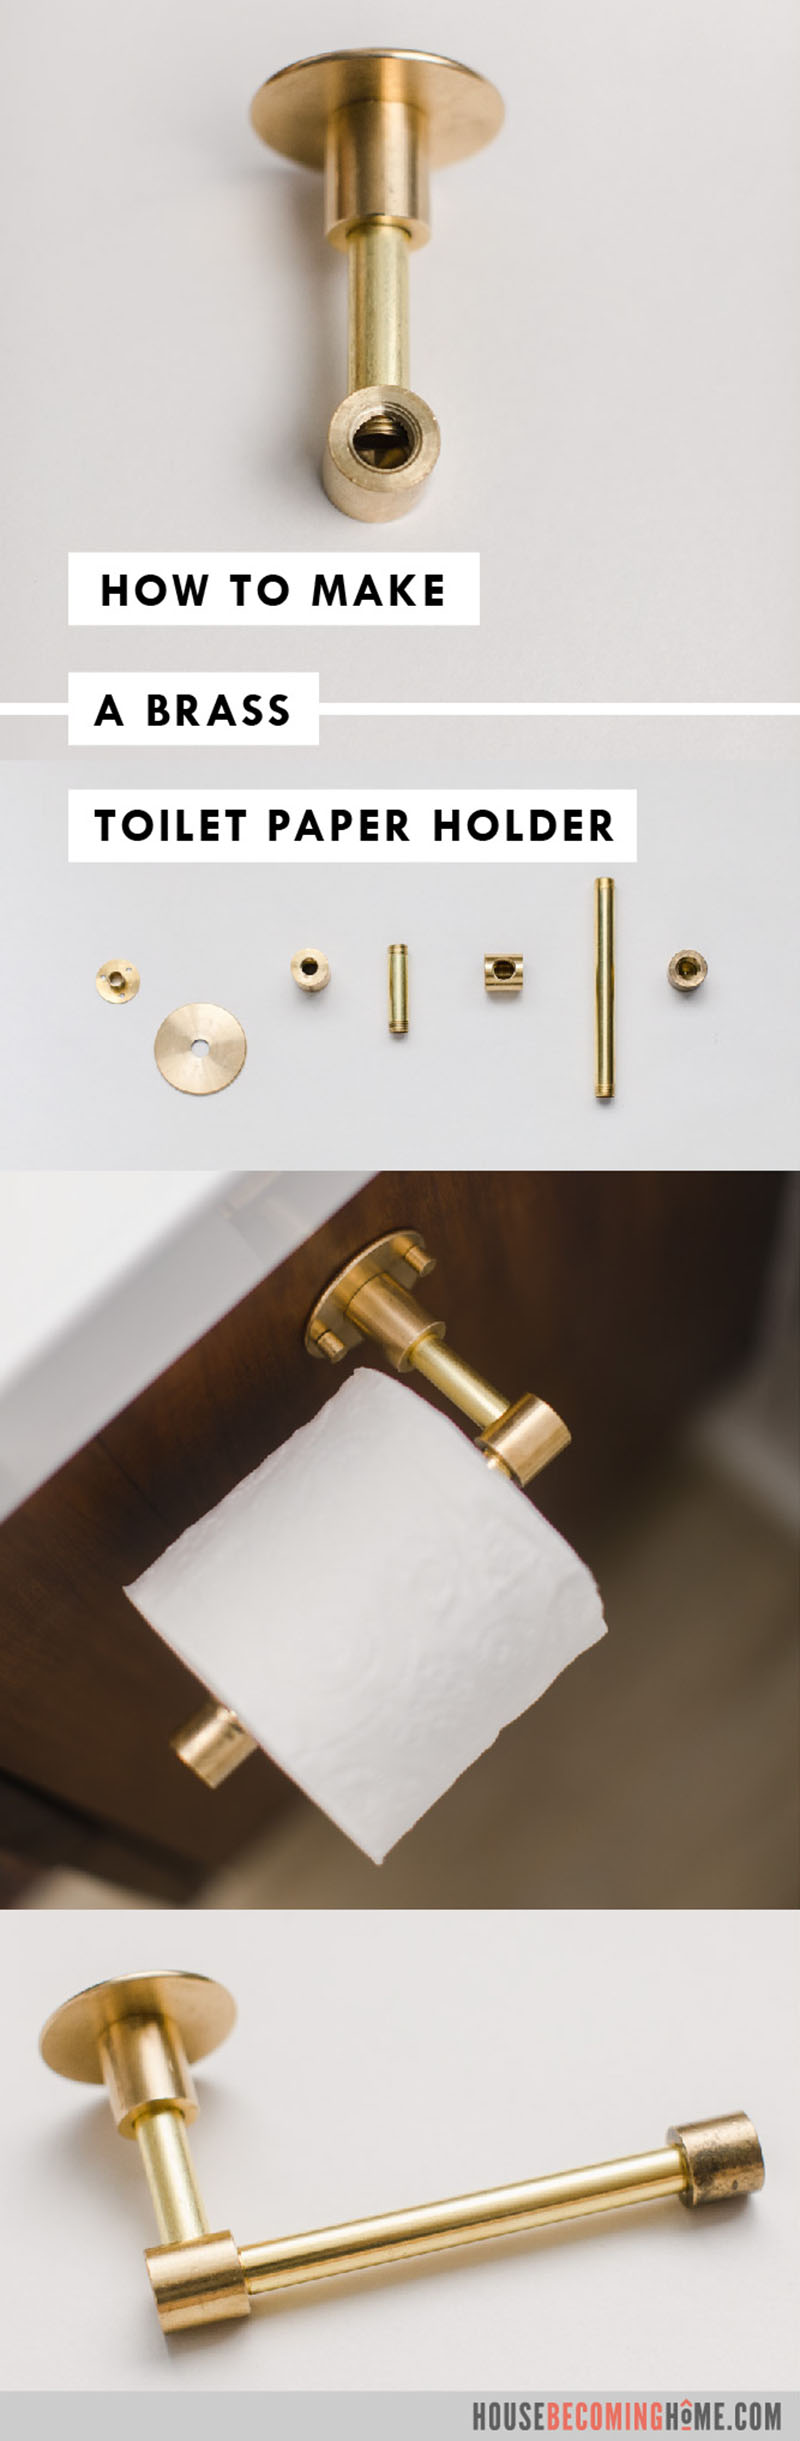 How to Make a Brass Toilet Paper Holder. Supply list and step by step instructions on House Becoming Home